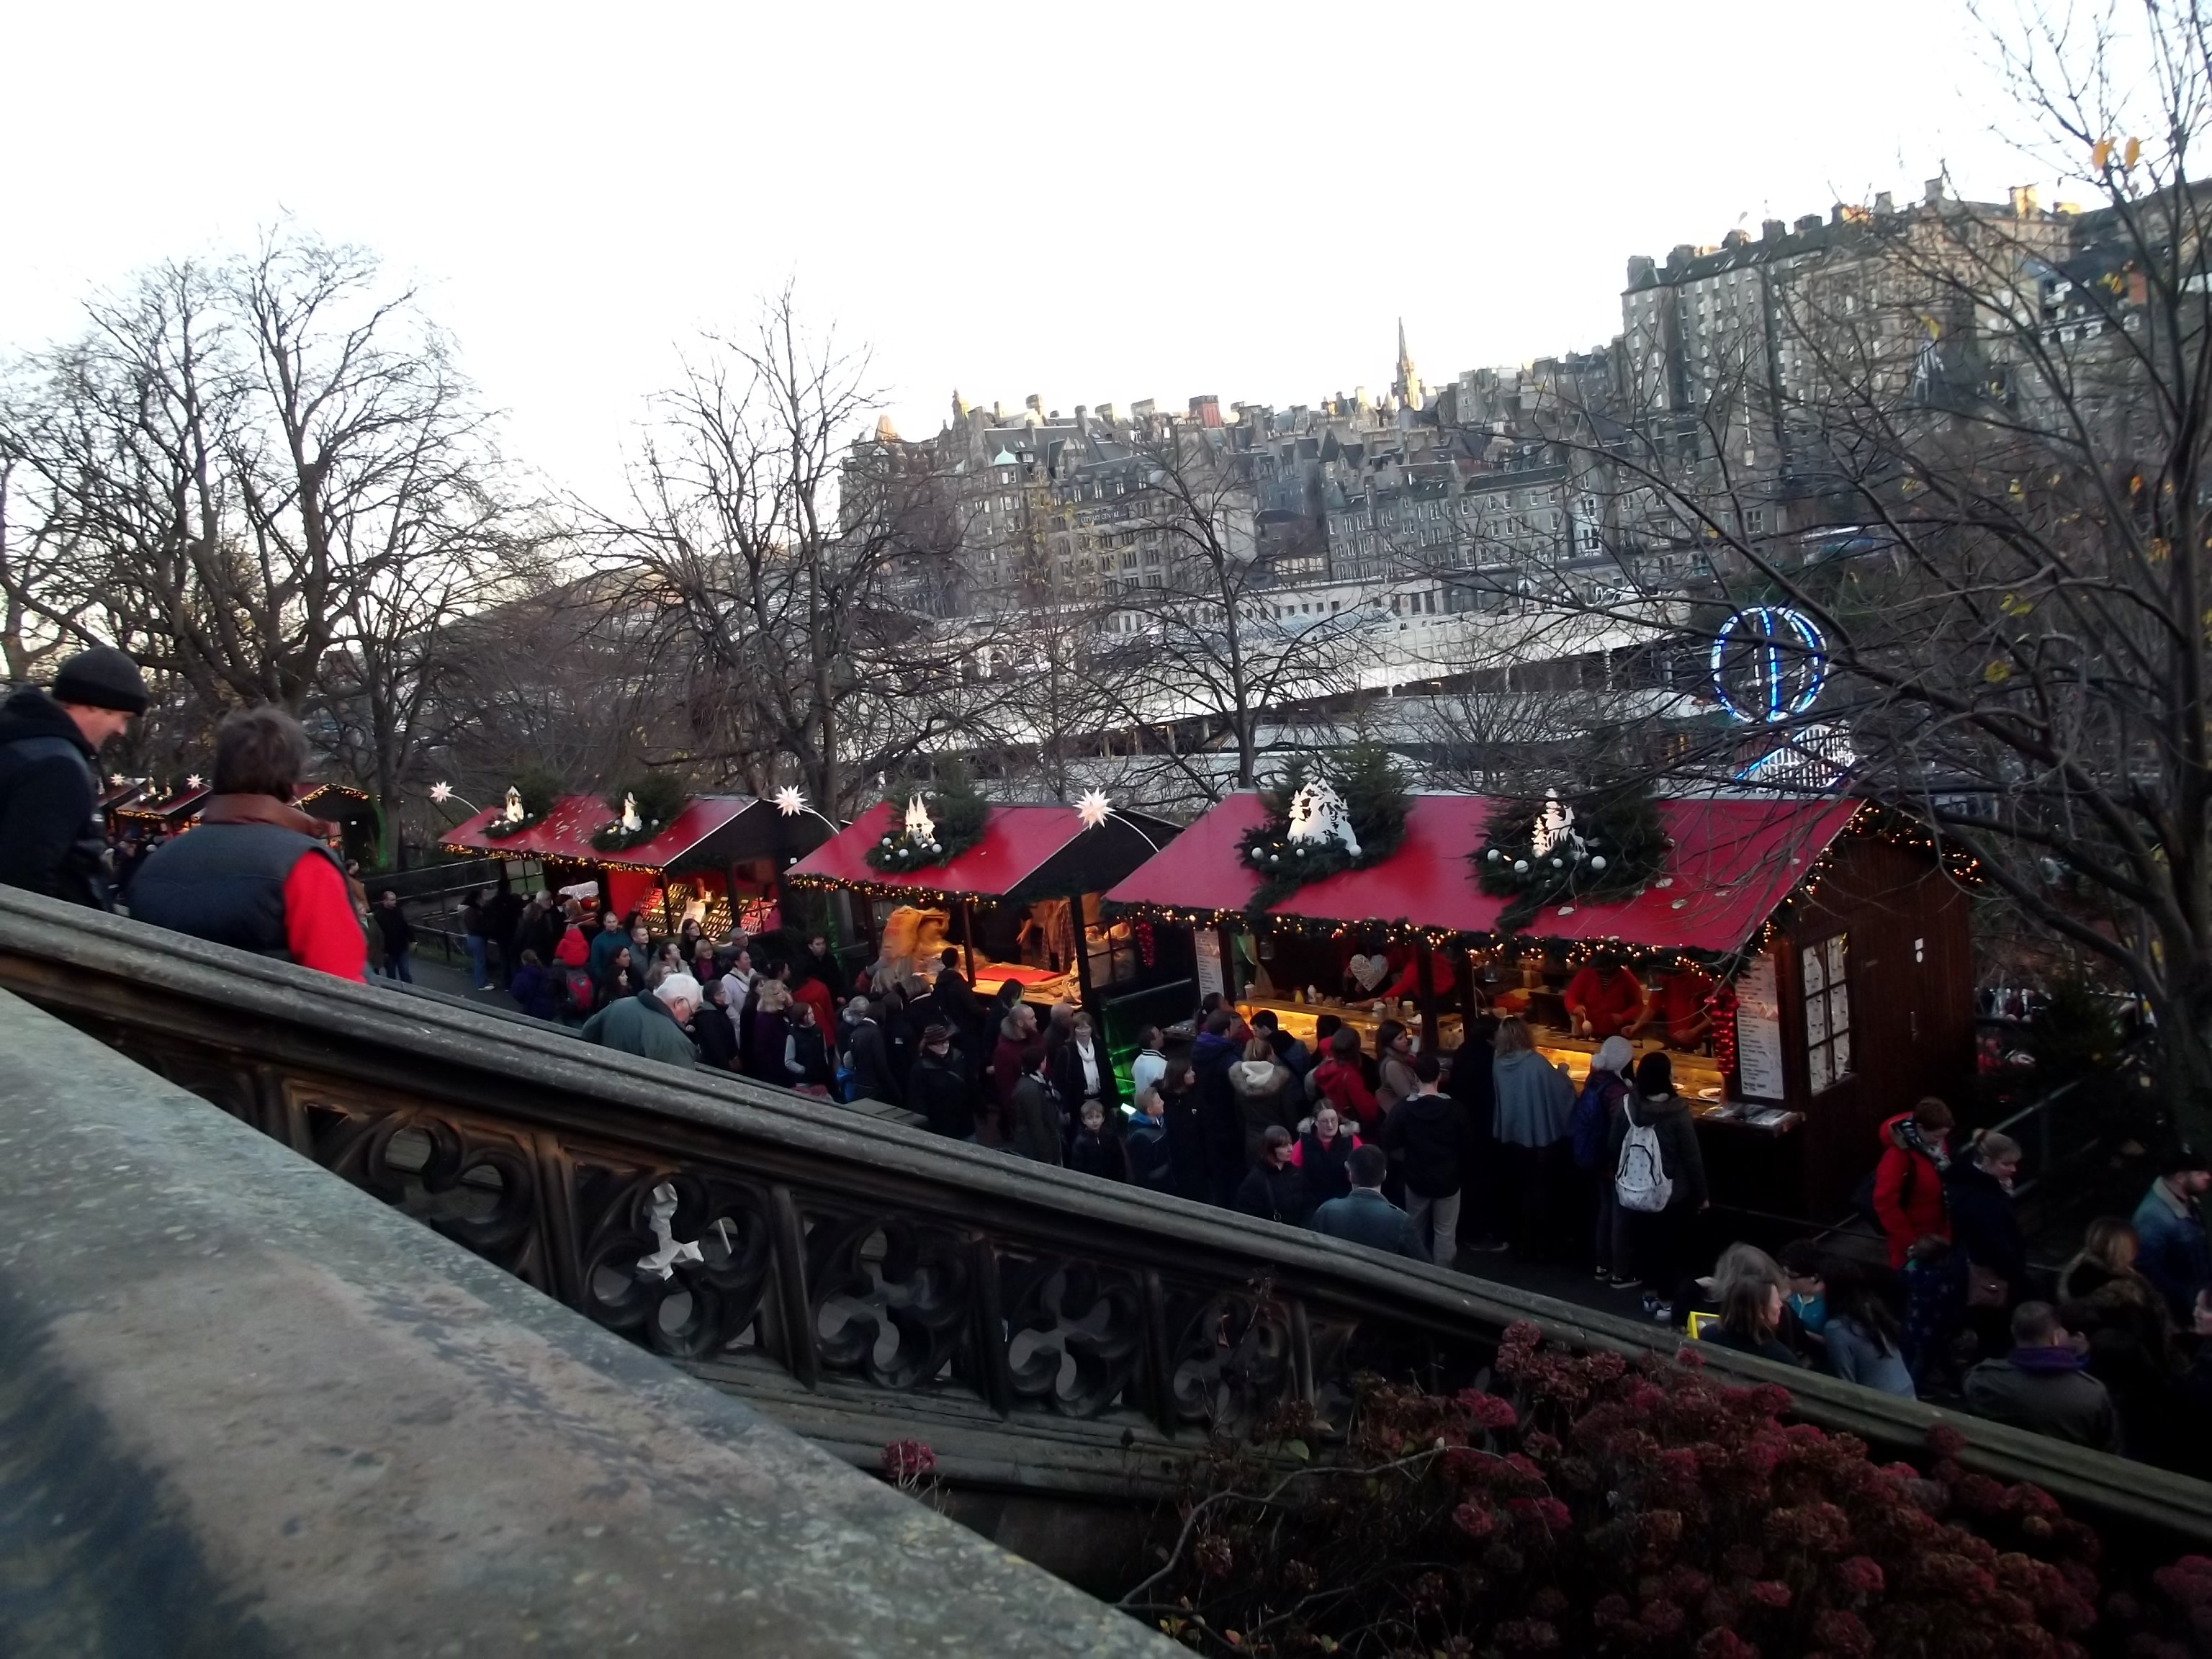 Grace's Blog: Student's Guide to Christmas Markets